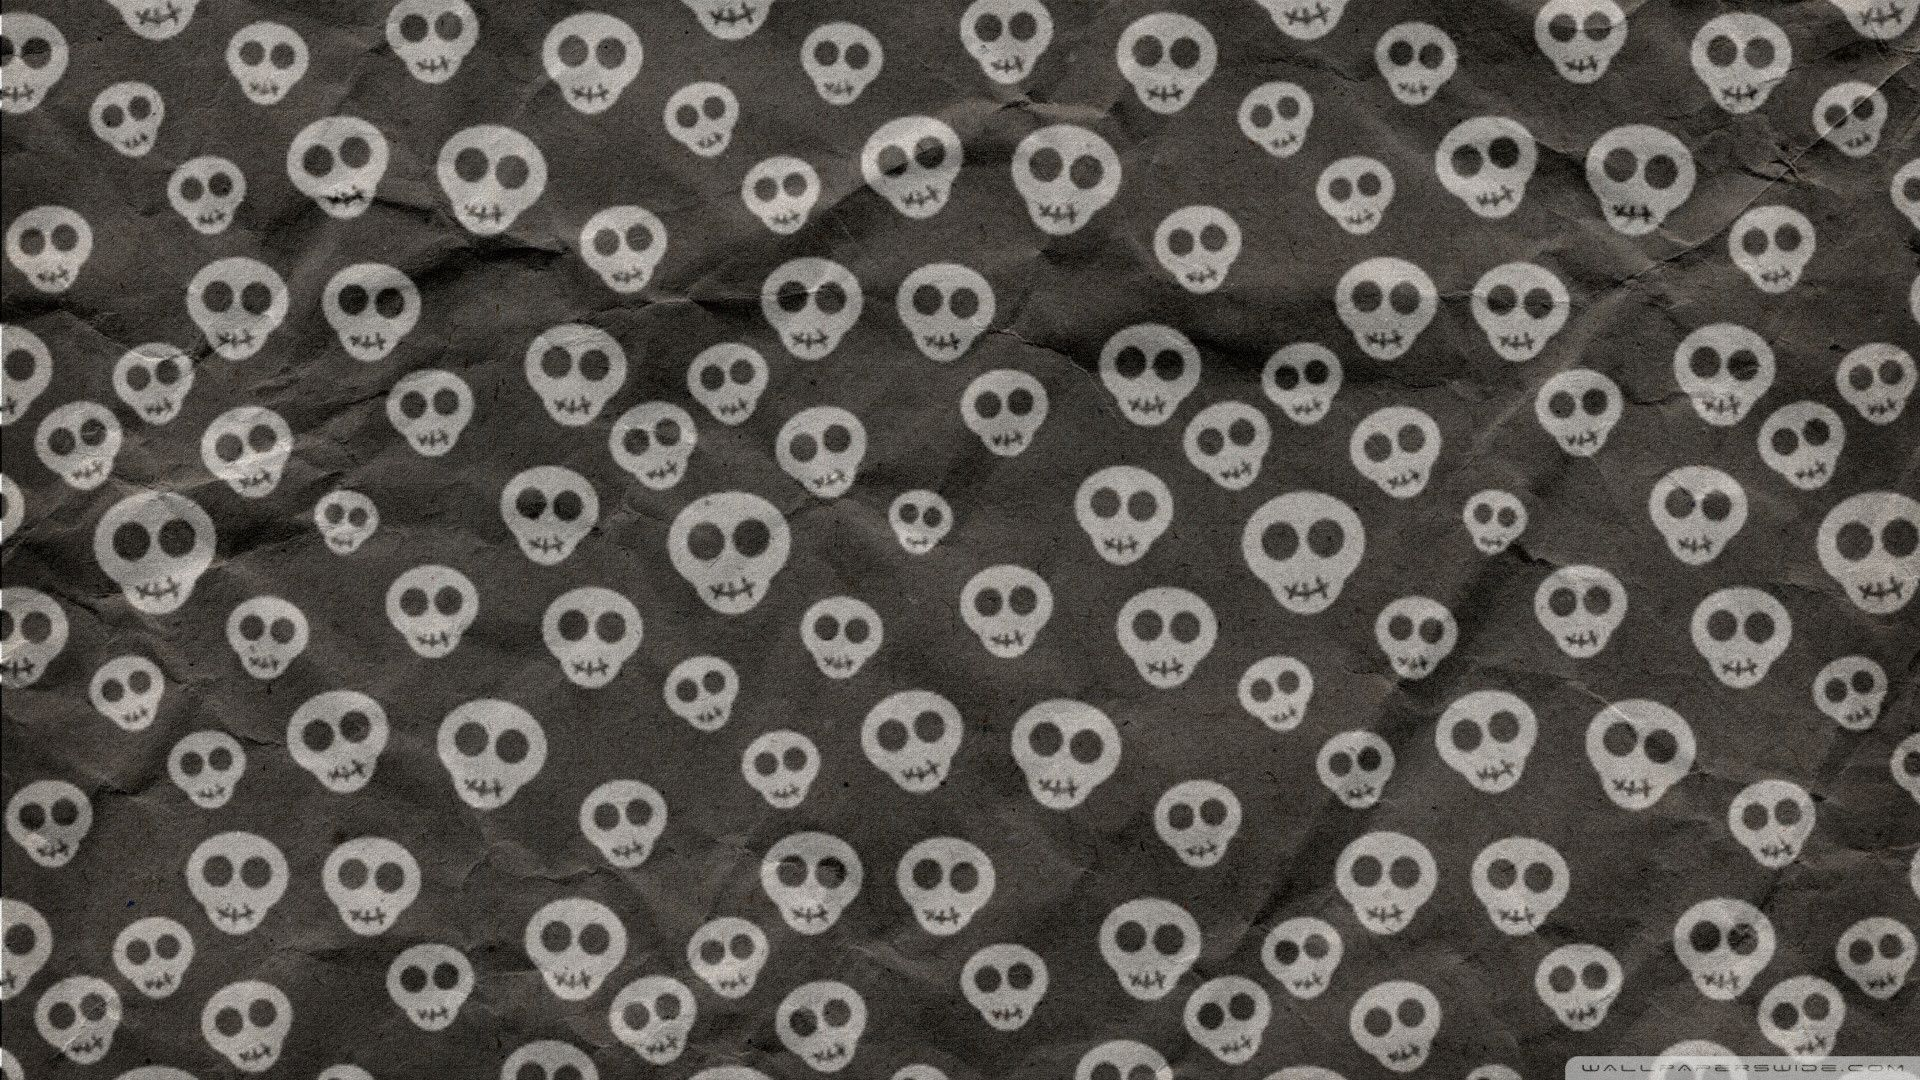 Cute Skull Backgrounds - Wallpaper Cave